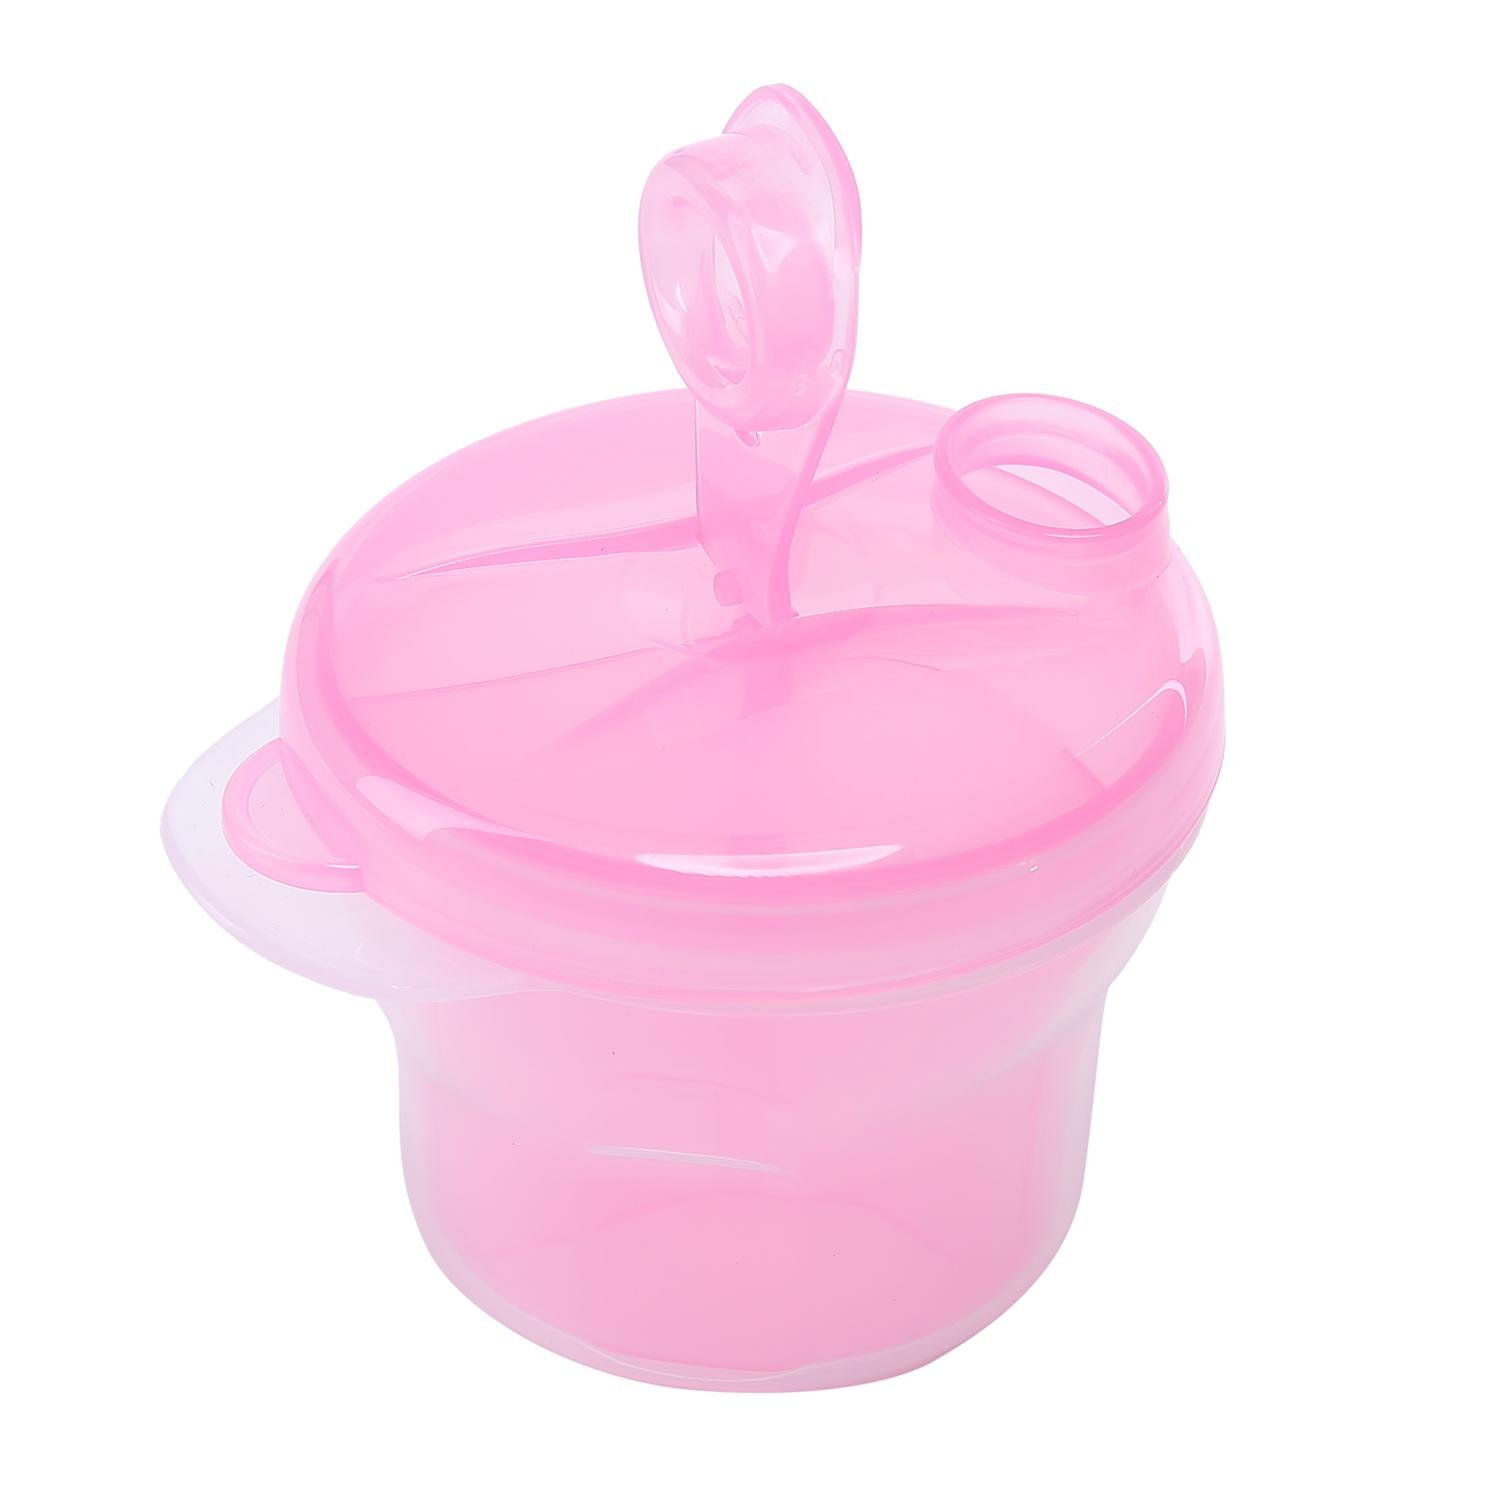 Leegoal(TM) 2 Pack Non-Spill Portable Baby Kids Milk Powder Formula Dispenser and Snack Cup Travel Container Bottle Storage Feeding Box,Pink